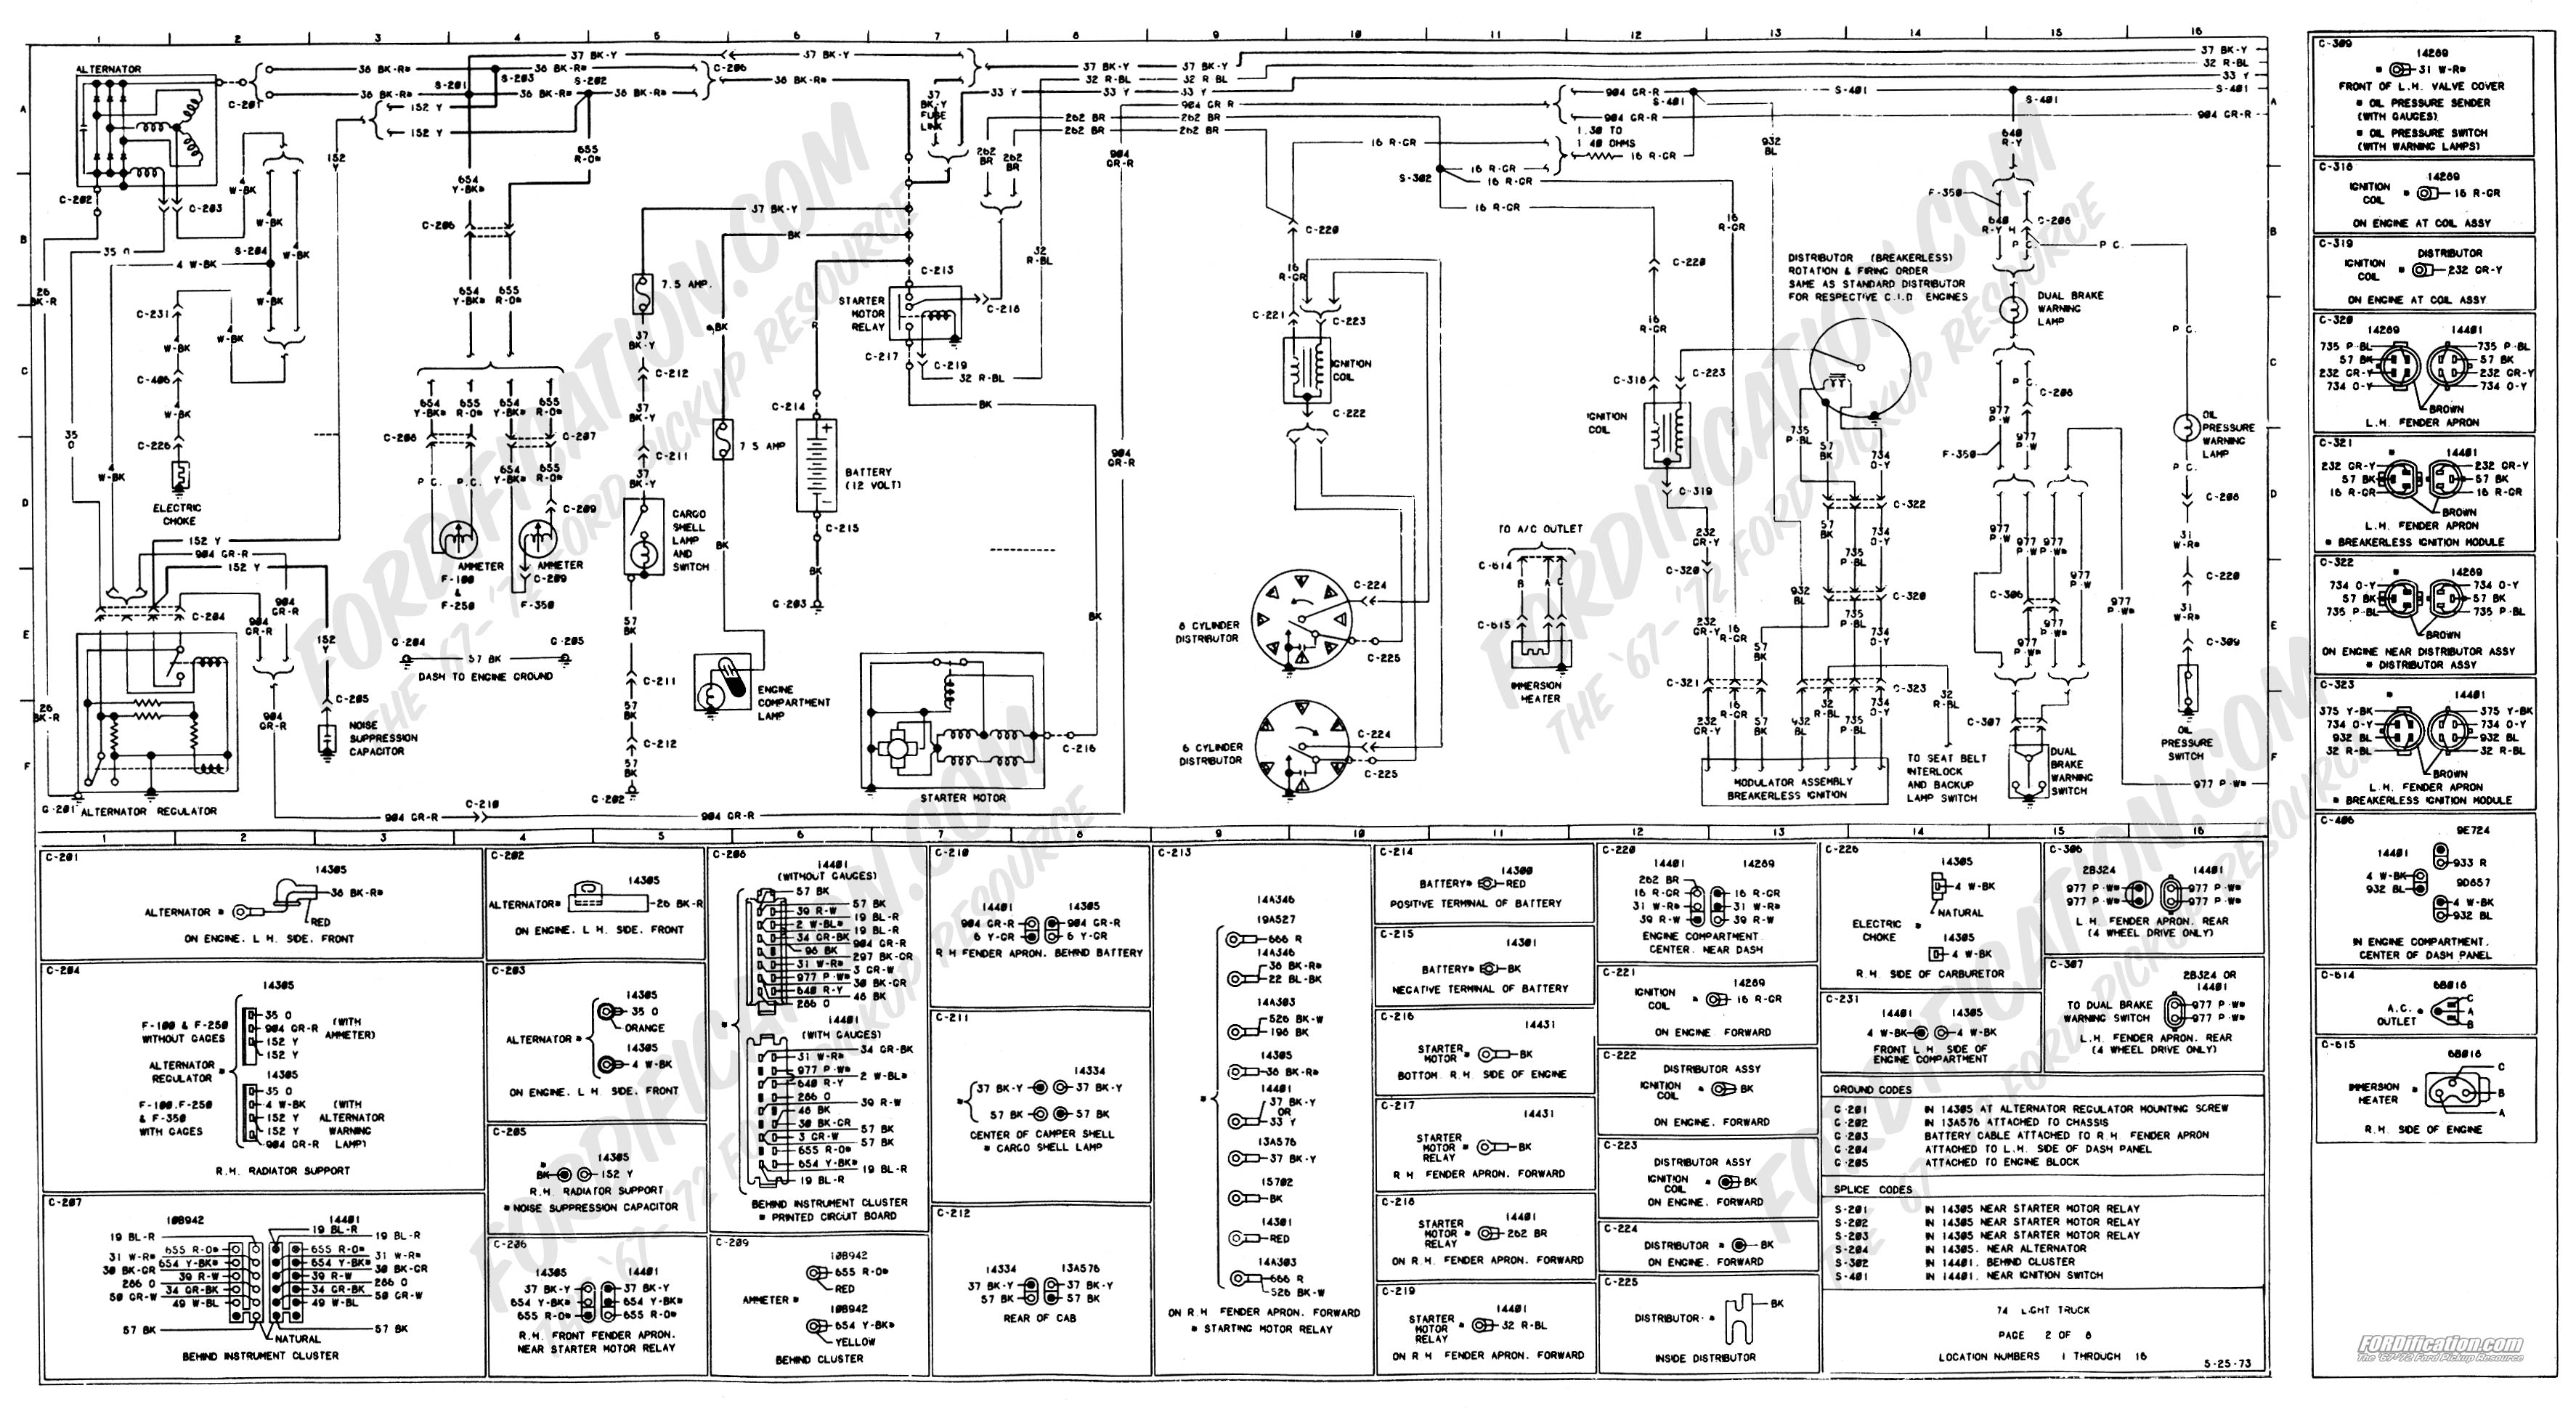 Wiring Diagram For 1974 Ford F250 Free Download 1990 1973 1979 Truck Diagrams Schematics Fordification Net